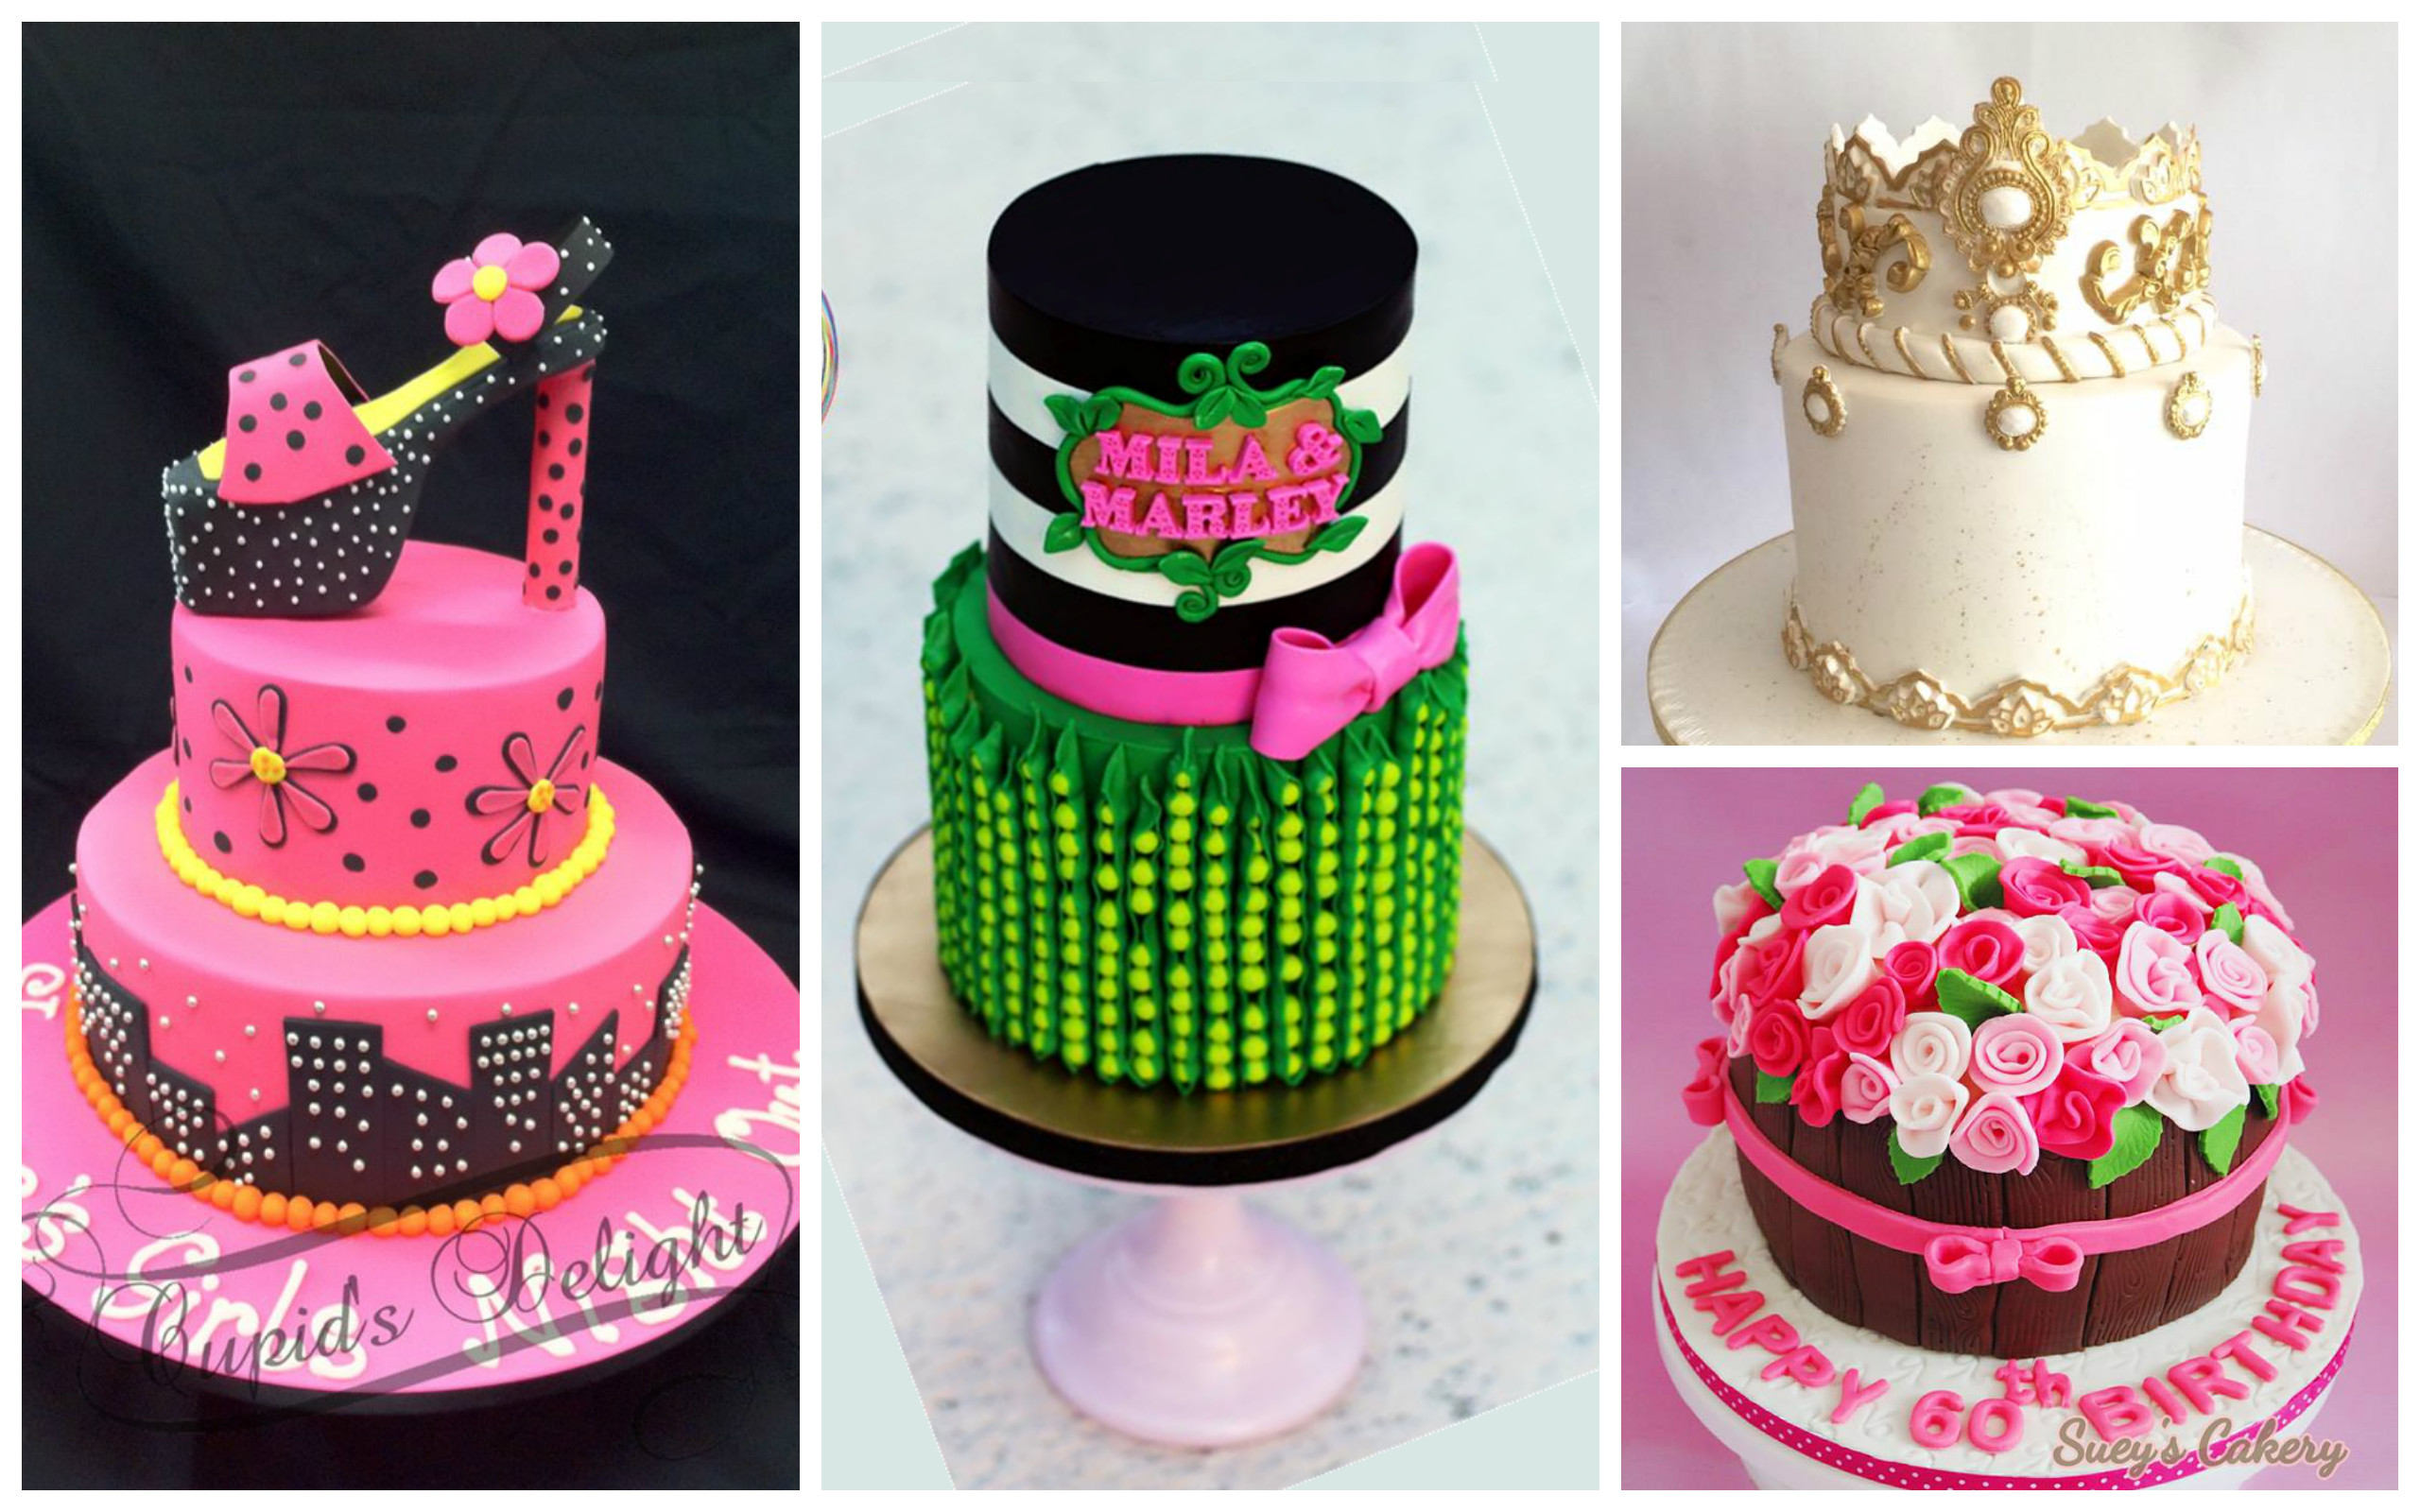 Best Cake Artist In The World : Search For The Highly Professional Cake Artist In The World